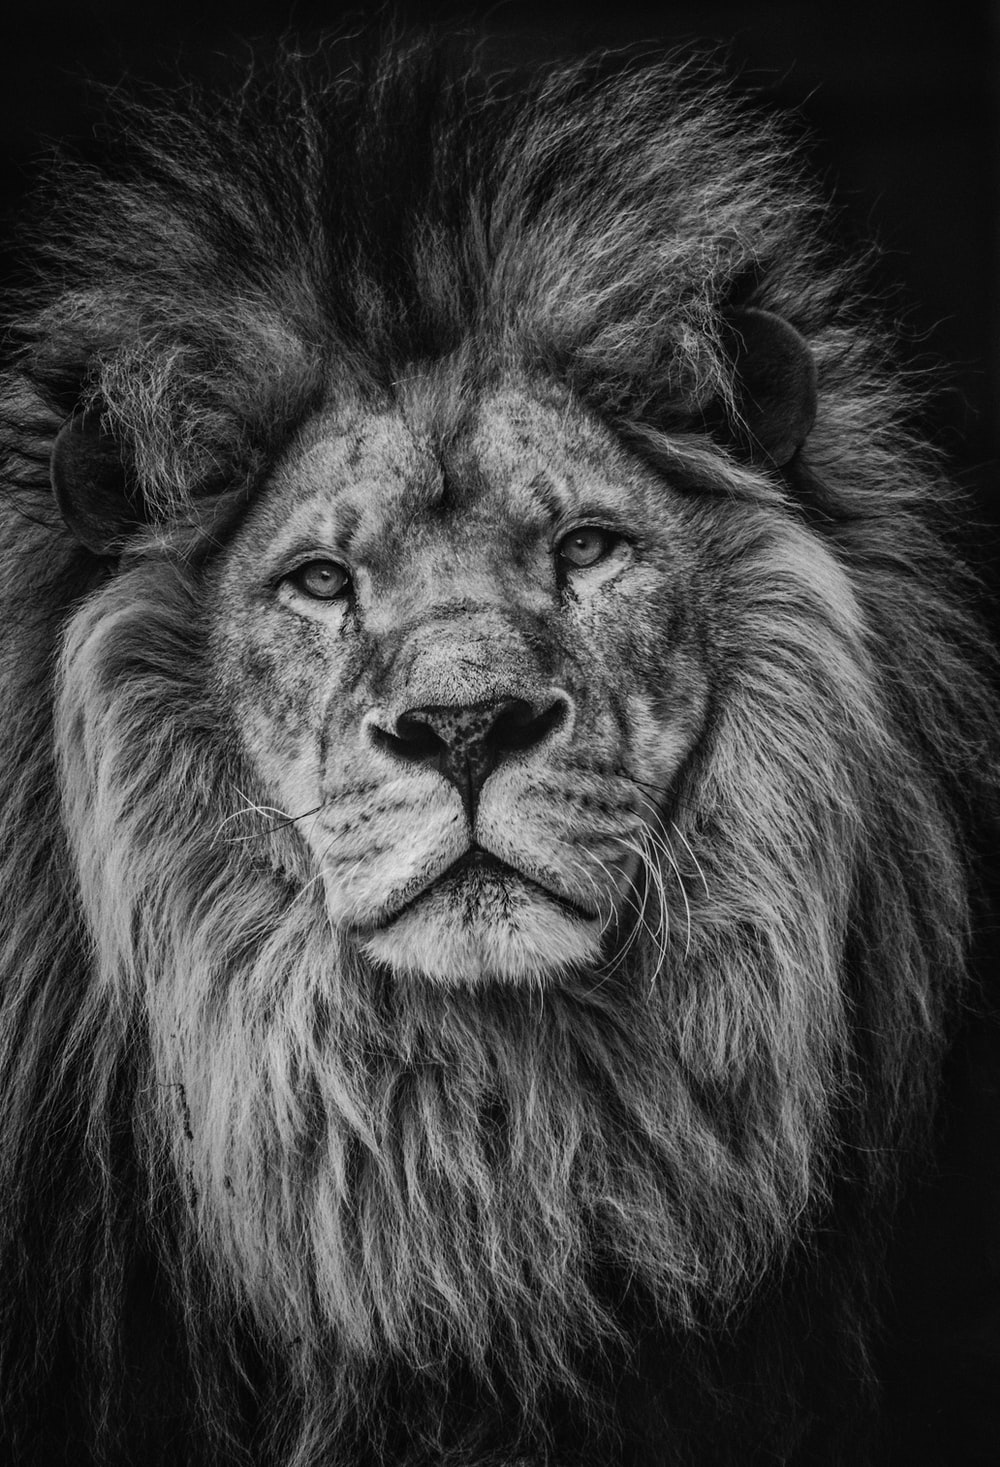 Lion Wallpapers Free Hd Download 500 Hq Unsplash